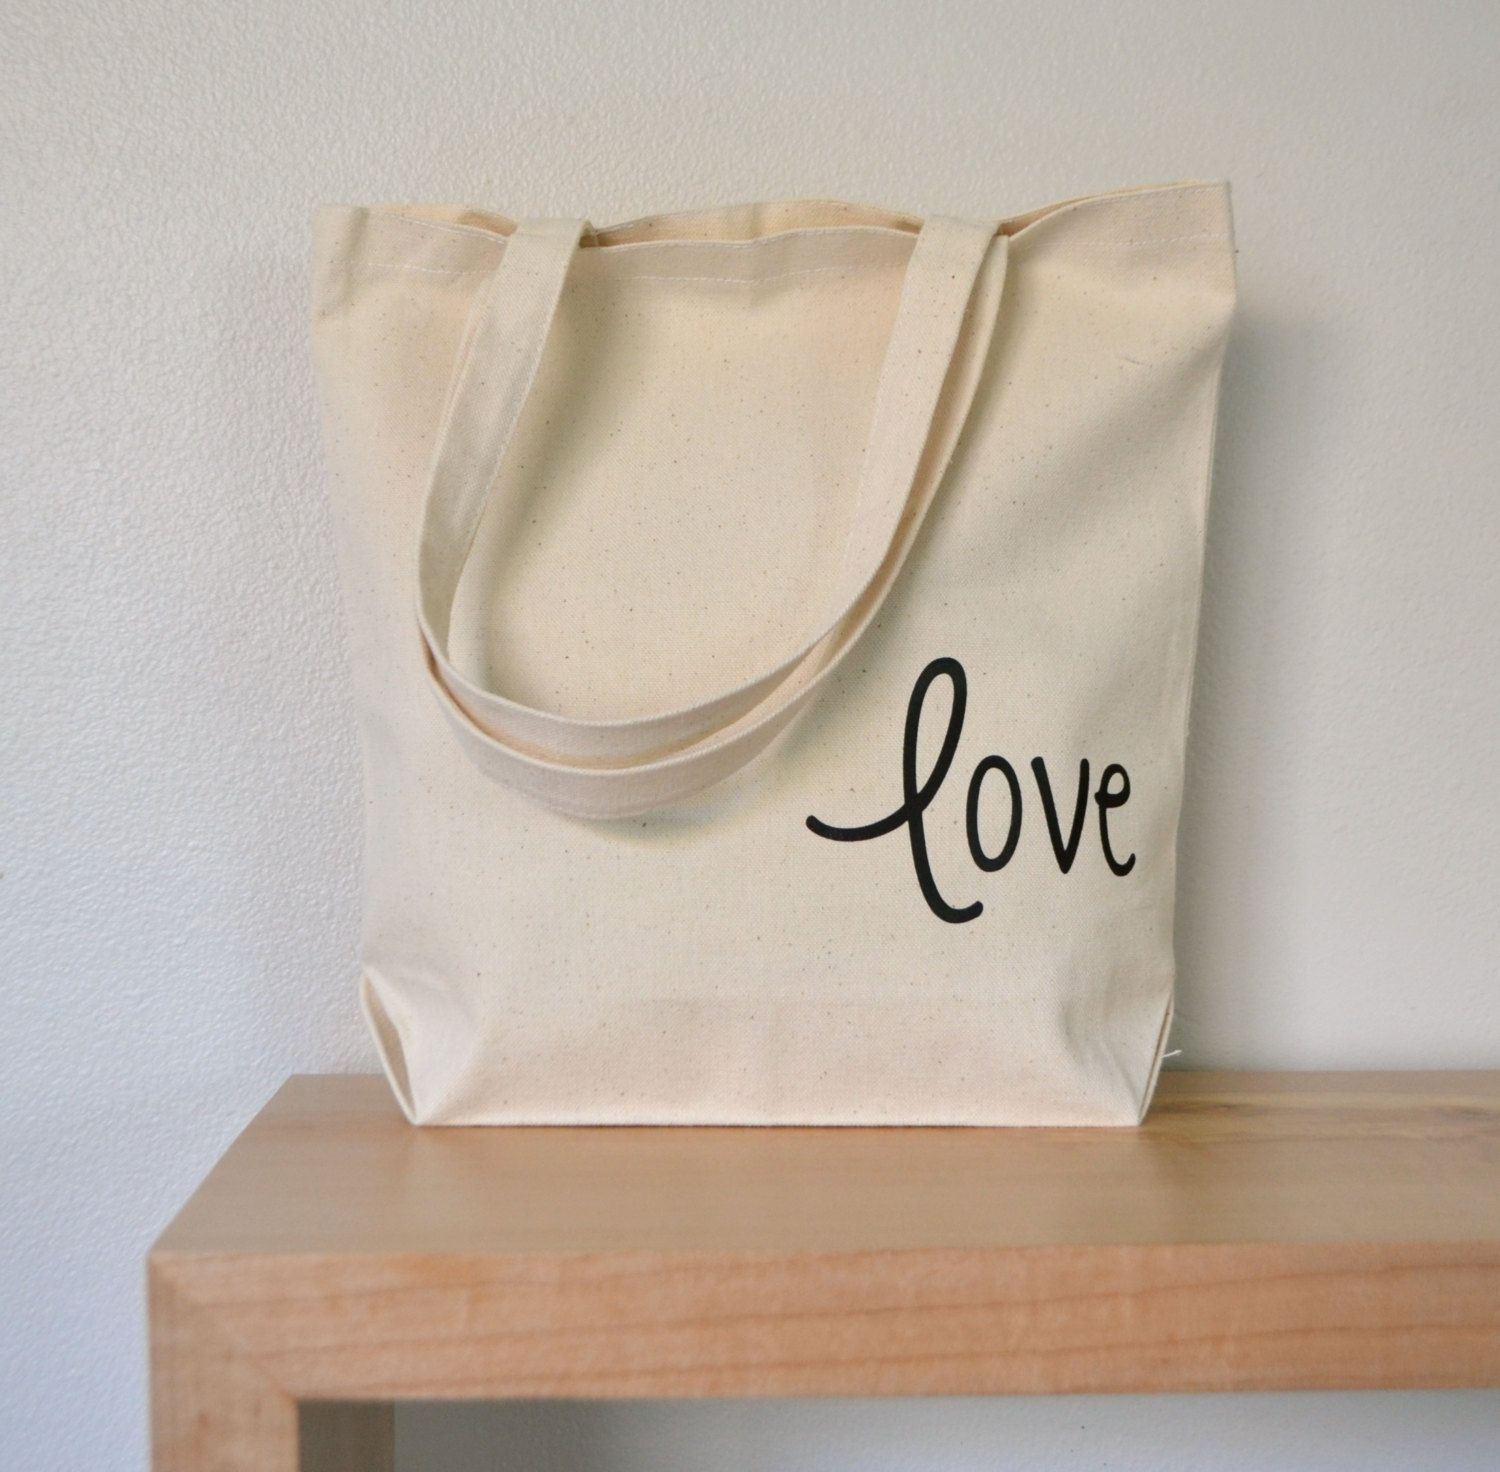 Love Tote bag - market tote in canvas with black lettering - bridal carry all - grocery tote - eco tote - bride tote bag - wedding bag by RevellHouse on Etsy